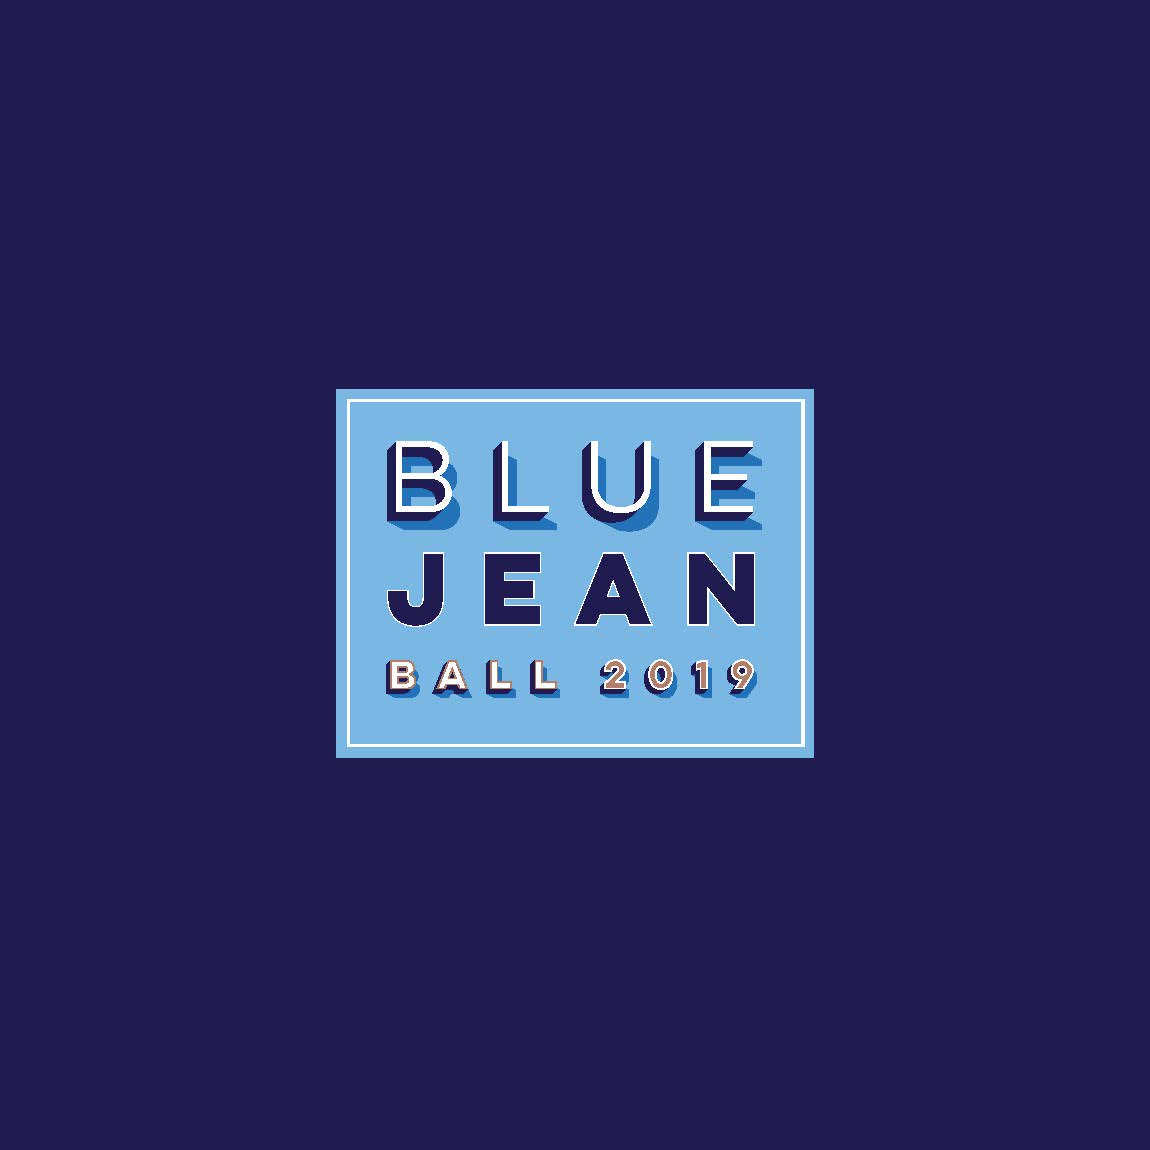 Get tickets for Blue Jean Ball until May 3. A food truck cocktail hour will feature Stone Soup Culinary Creations, Harvest Restaurant Group & @compassgroupusa. @WakefernFood, Judy & Josh Weston, @SMG_Foundation & 7 agency partners will be honored. http://cfbnj.org/bluejeanball2019…